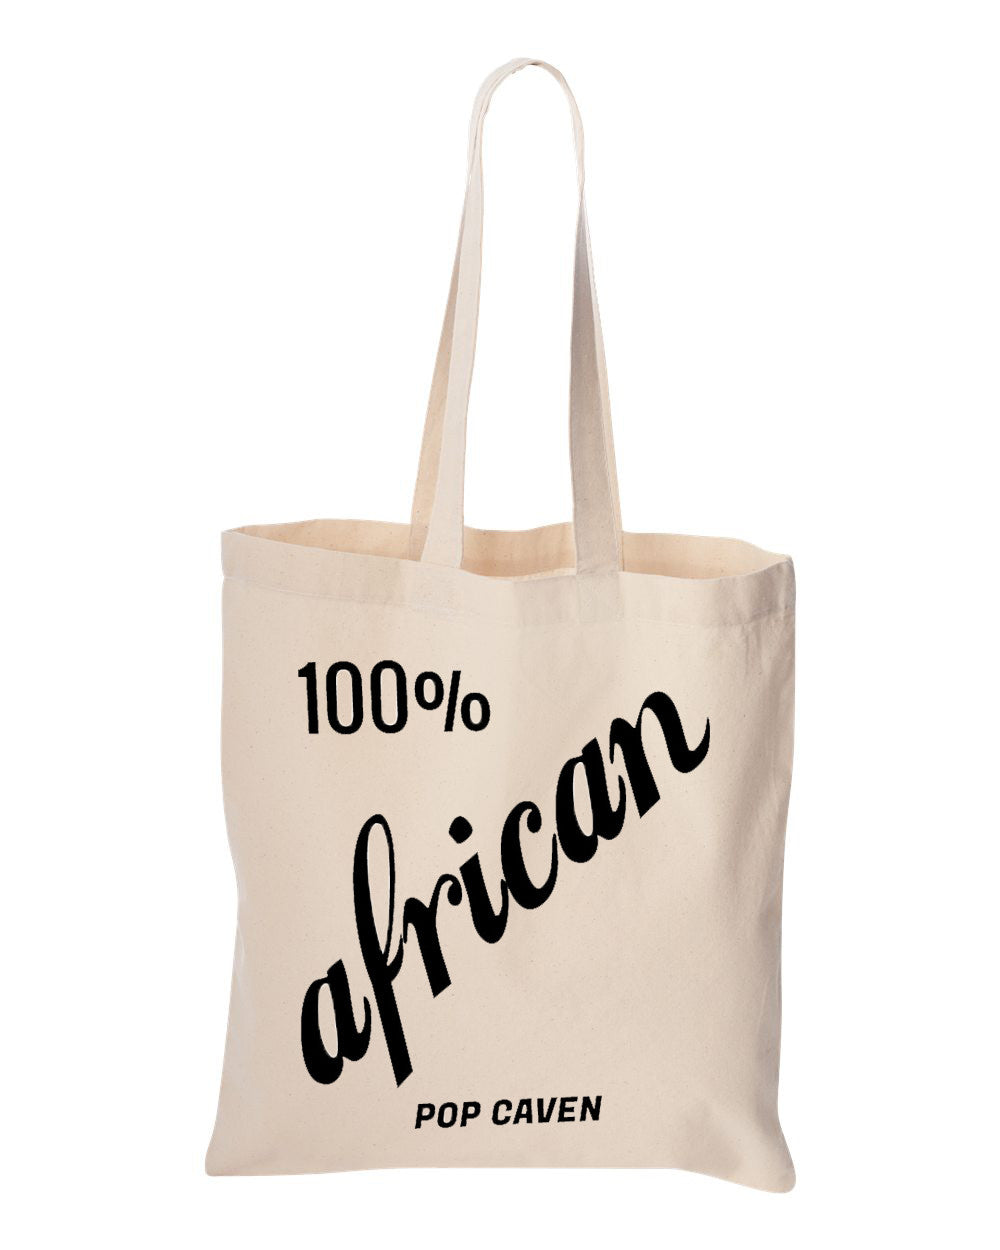 100% AFRICAN TOTE BAG - POP CAVEN